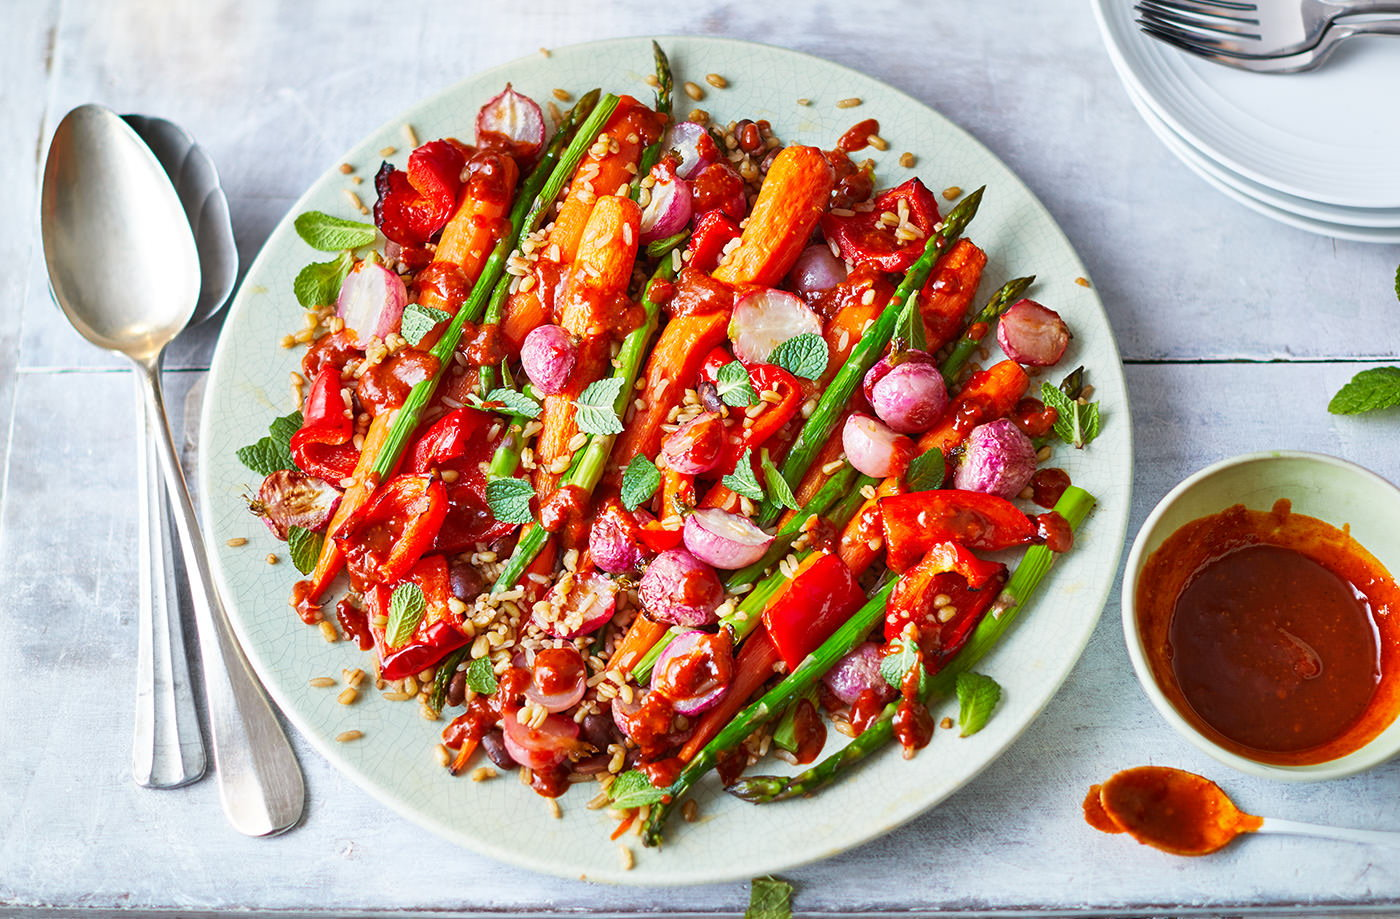 Healthy Lunch Ideas Healthy Meals Tesco Real Food for Incredible healthy lunch ideas intended for your reference